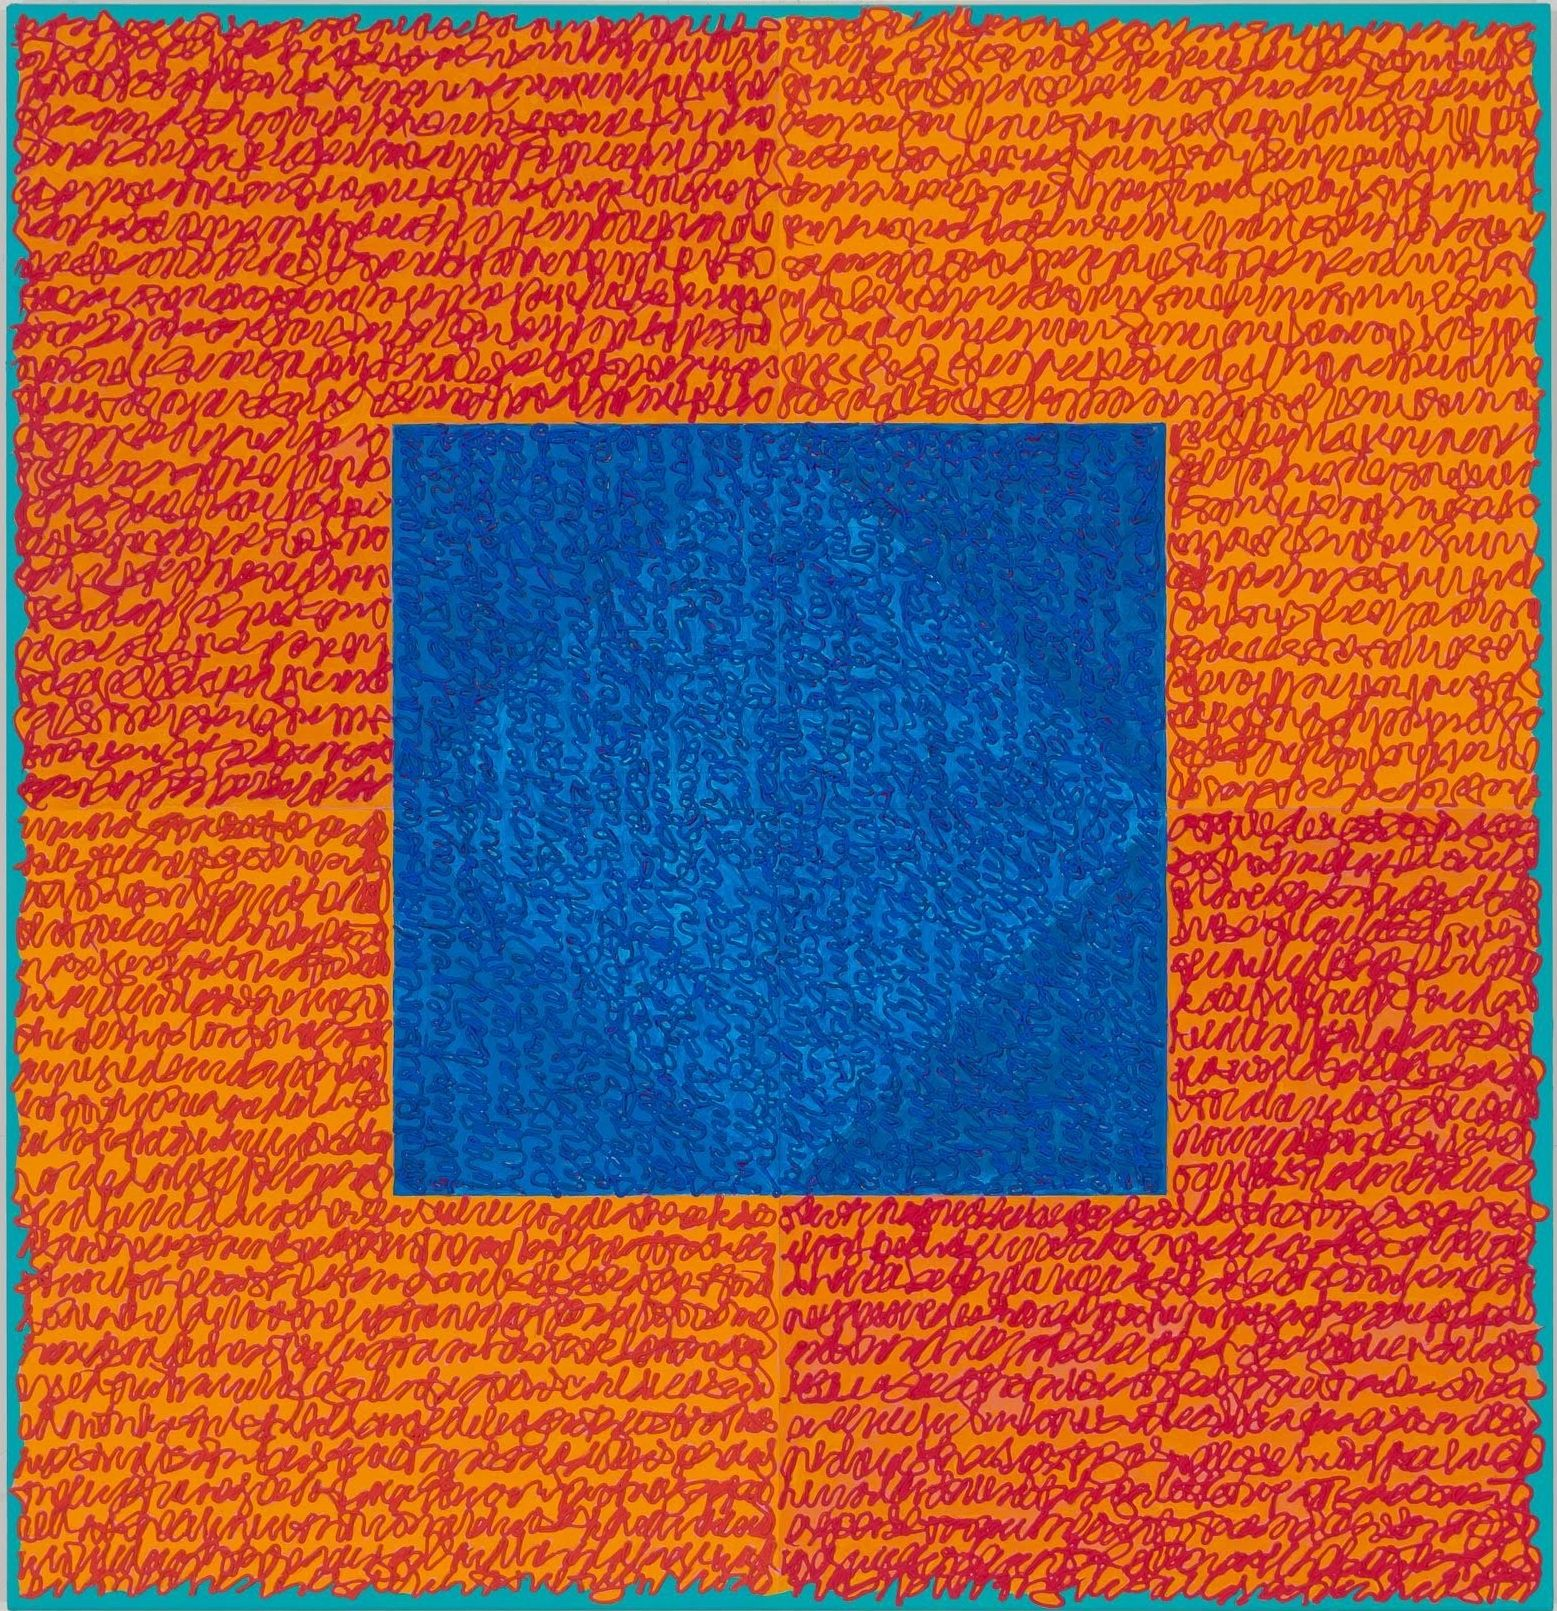 Louise P. Sloane, Sizzler, 2017, Acrylic paints and pastes on aluminum panel, 46 x 44 inches, four rectangles and a central square (blue and orange) with personal text written in red-orange over the squares to create three dimensional texture. Louise P. Sloane has been creating abstract paintings since 1974. Her works focus on geometric forms while celebrating color and texture.